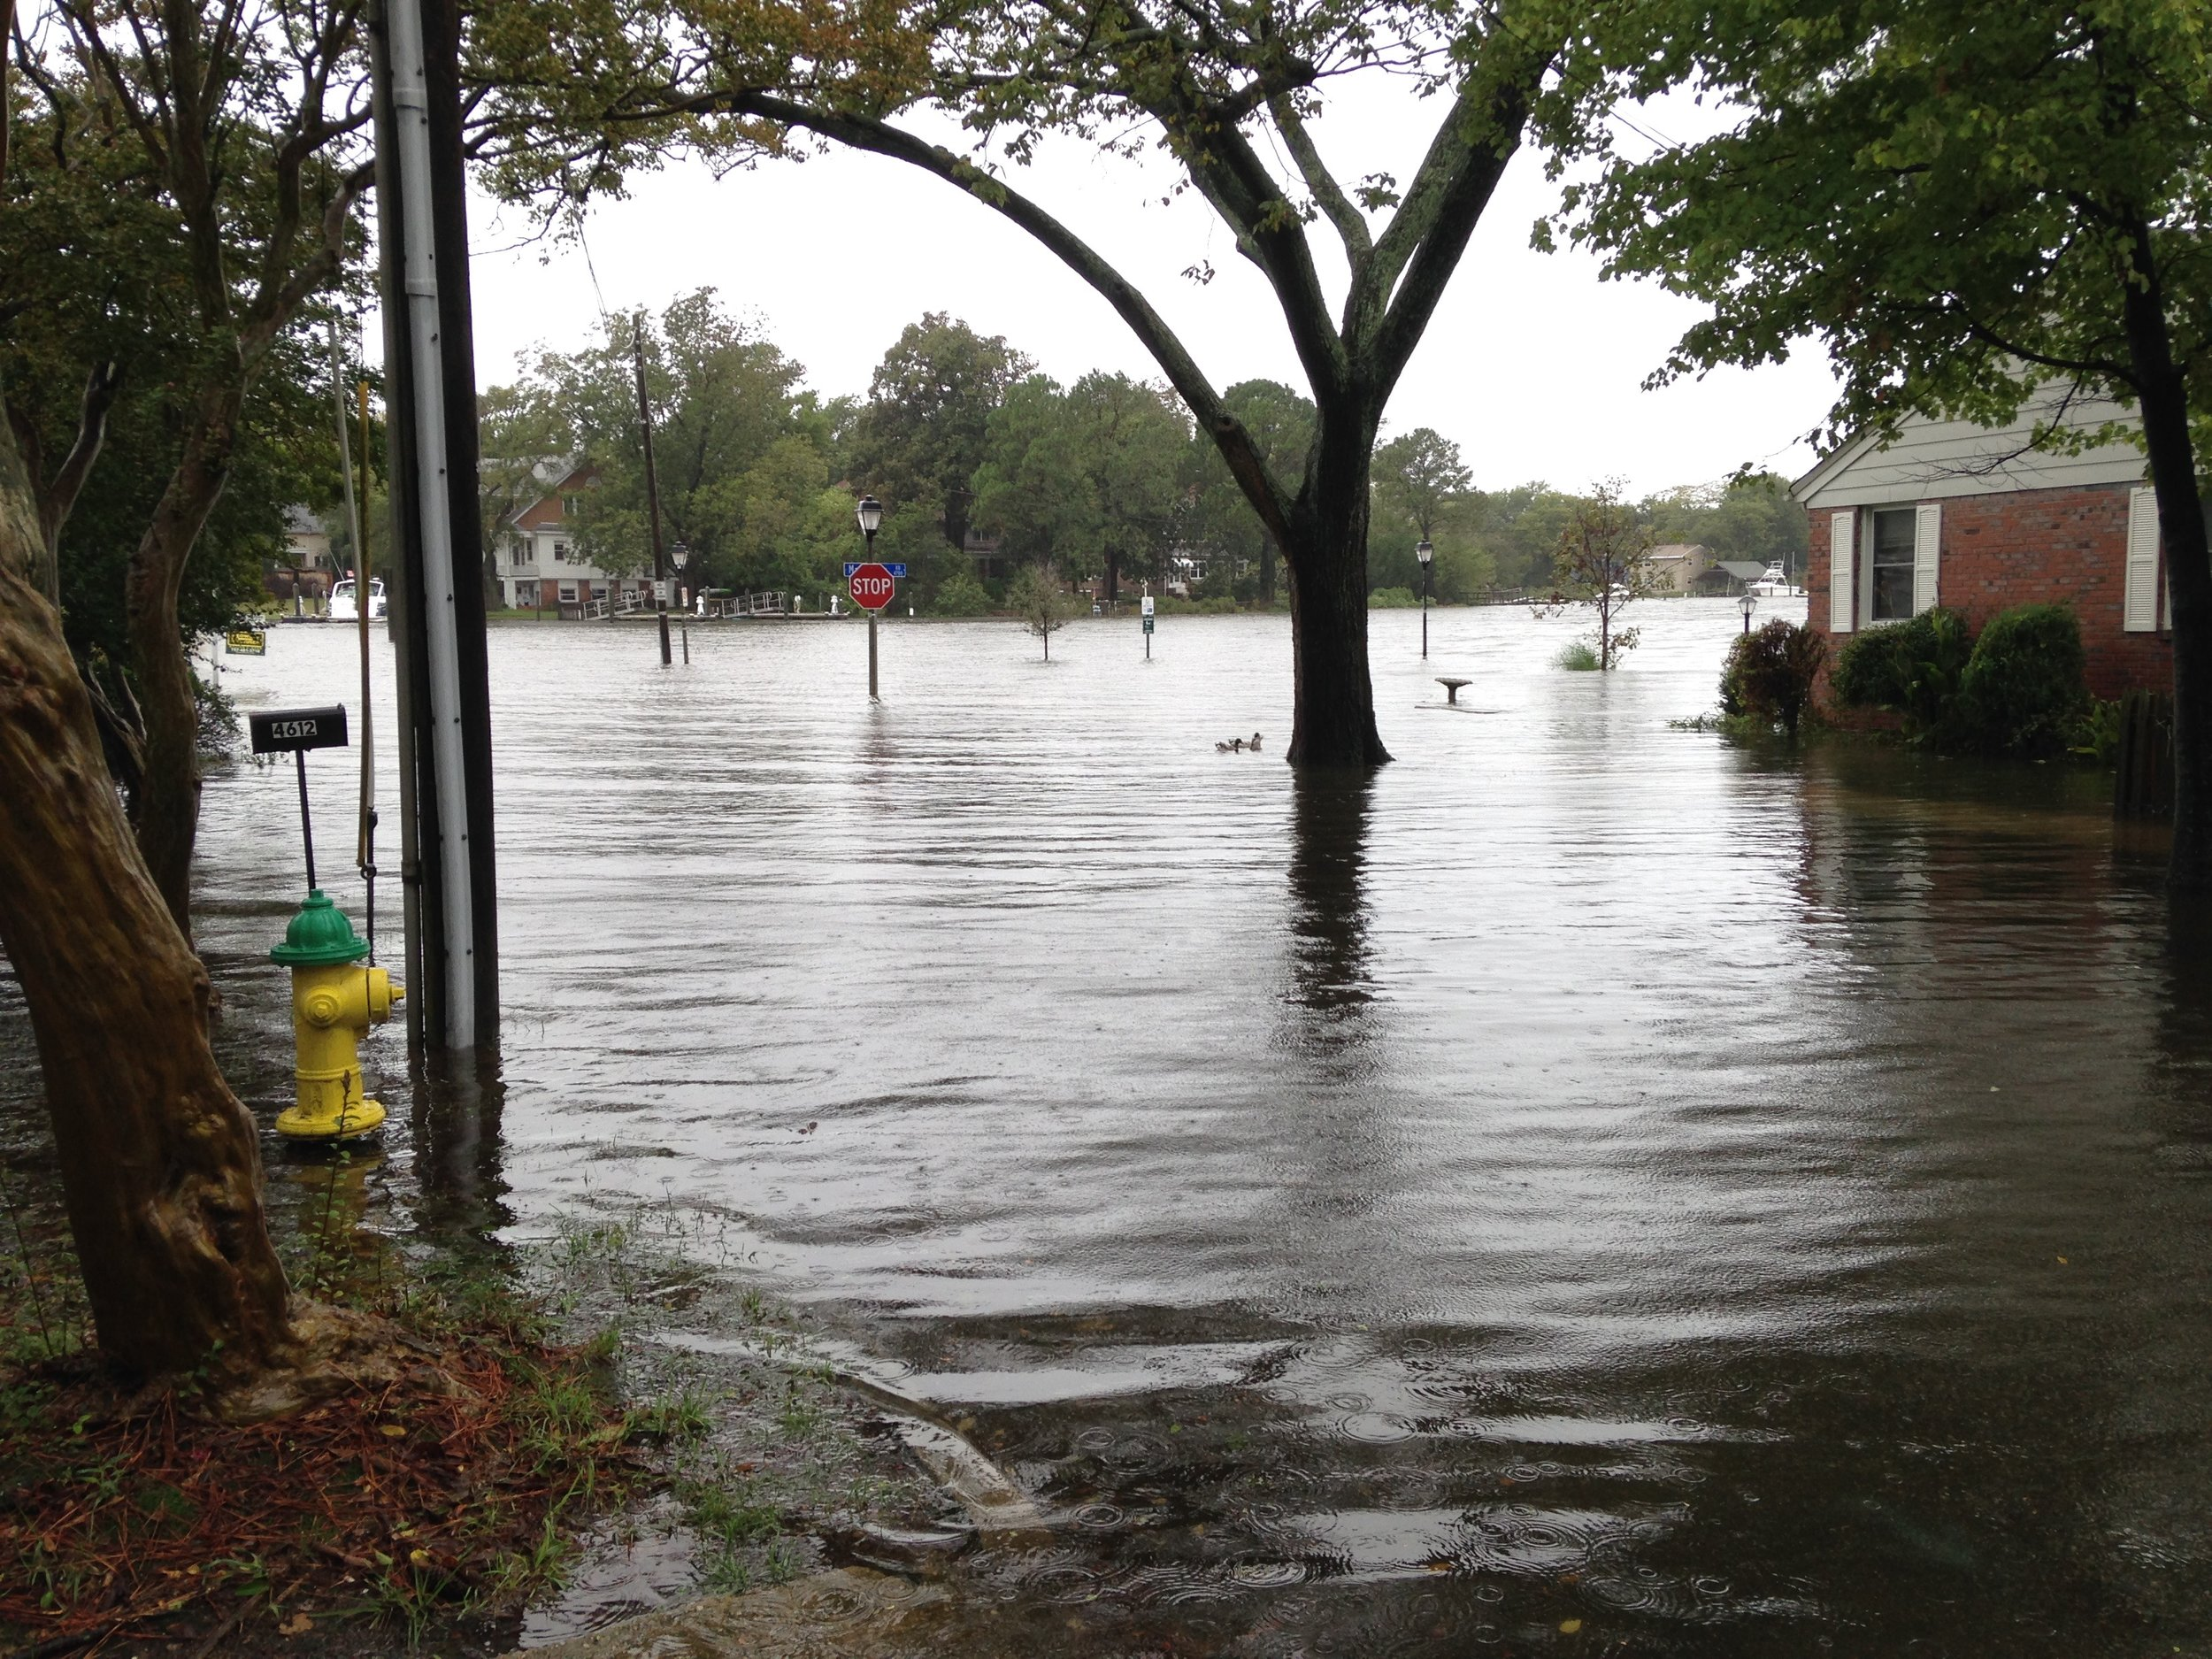 Poquoson, Virginia  - Used FEMA's HAZUS program to estimate that a 100-year flood event could result in over $400 million of damage. Existing structural elevation projects save the City an estimated $100 million against damages